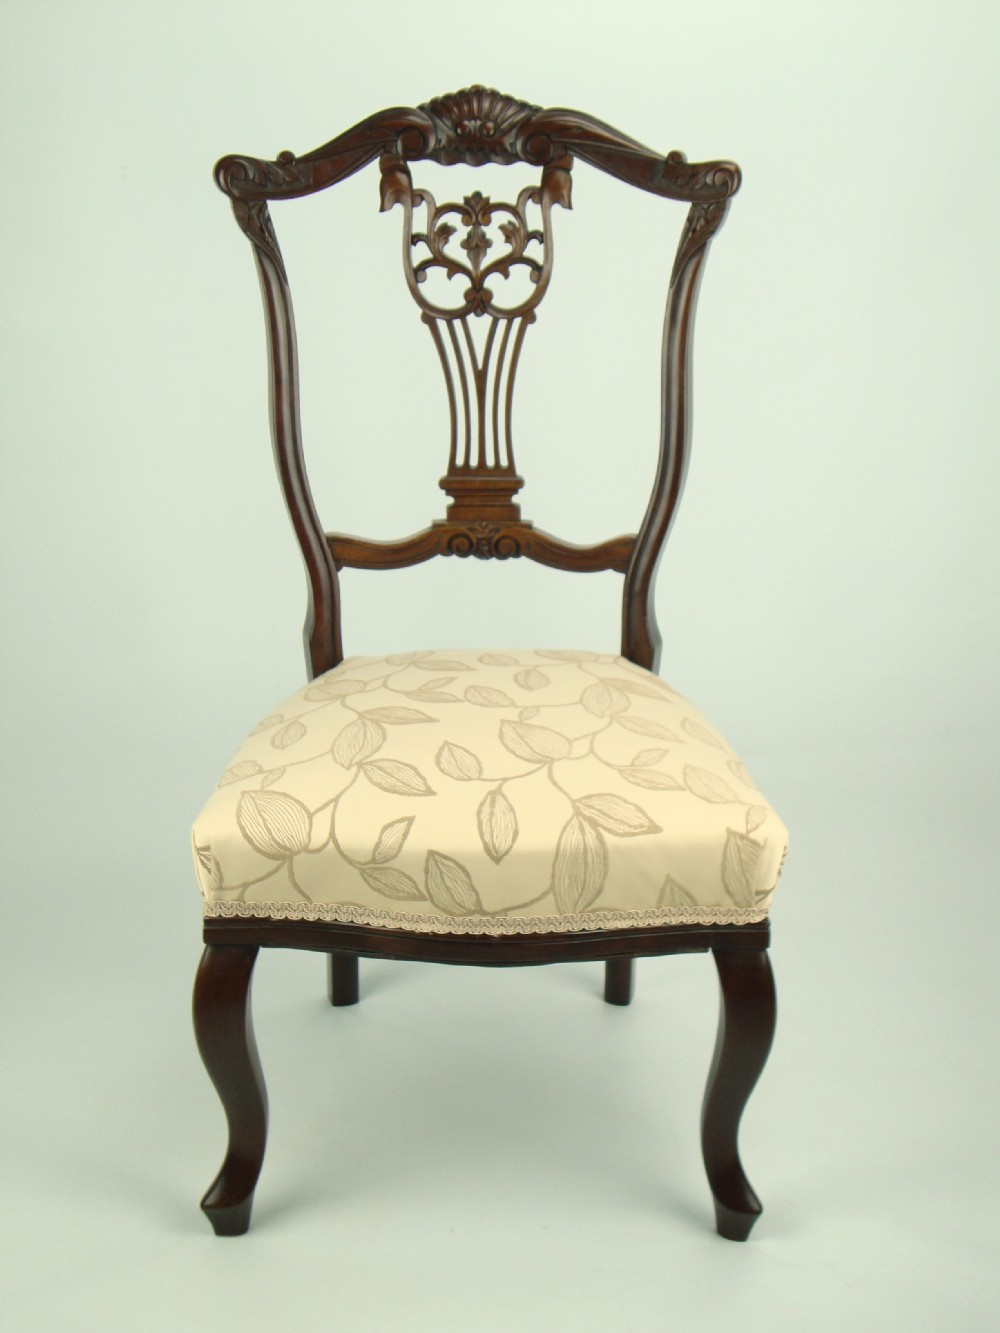 antique edwardian nursing chair - Antique Edwardian Nursing Chair 234473 Sellingantiques.co.uk